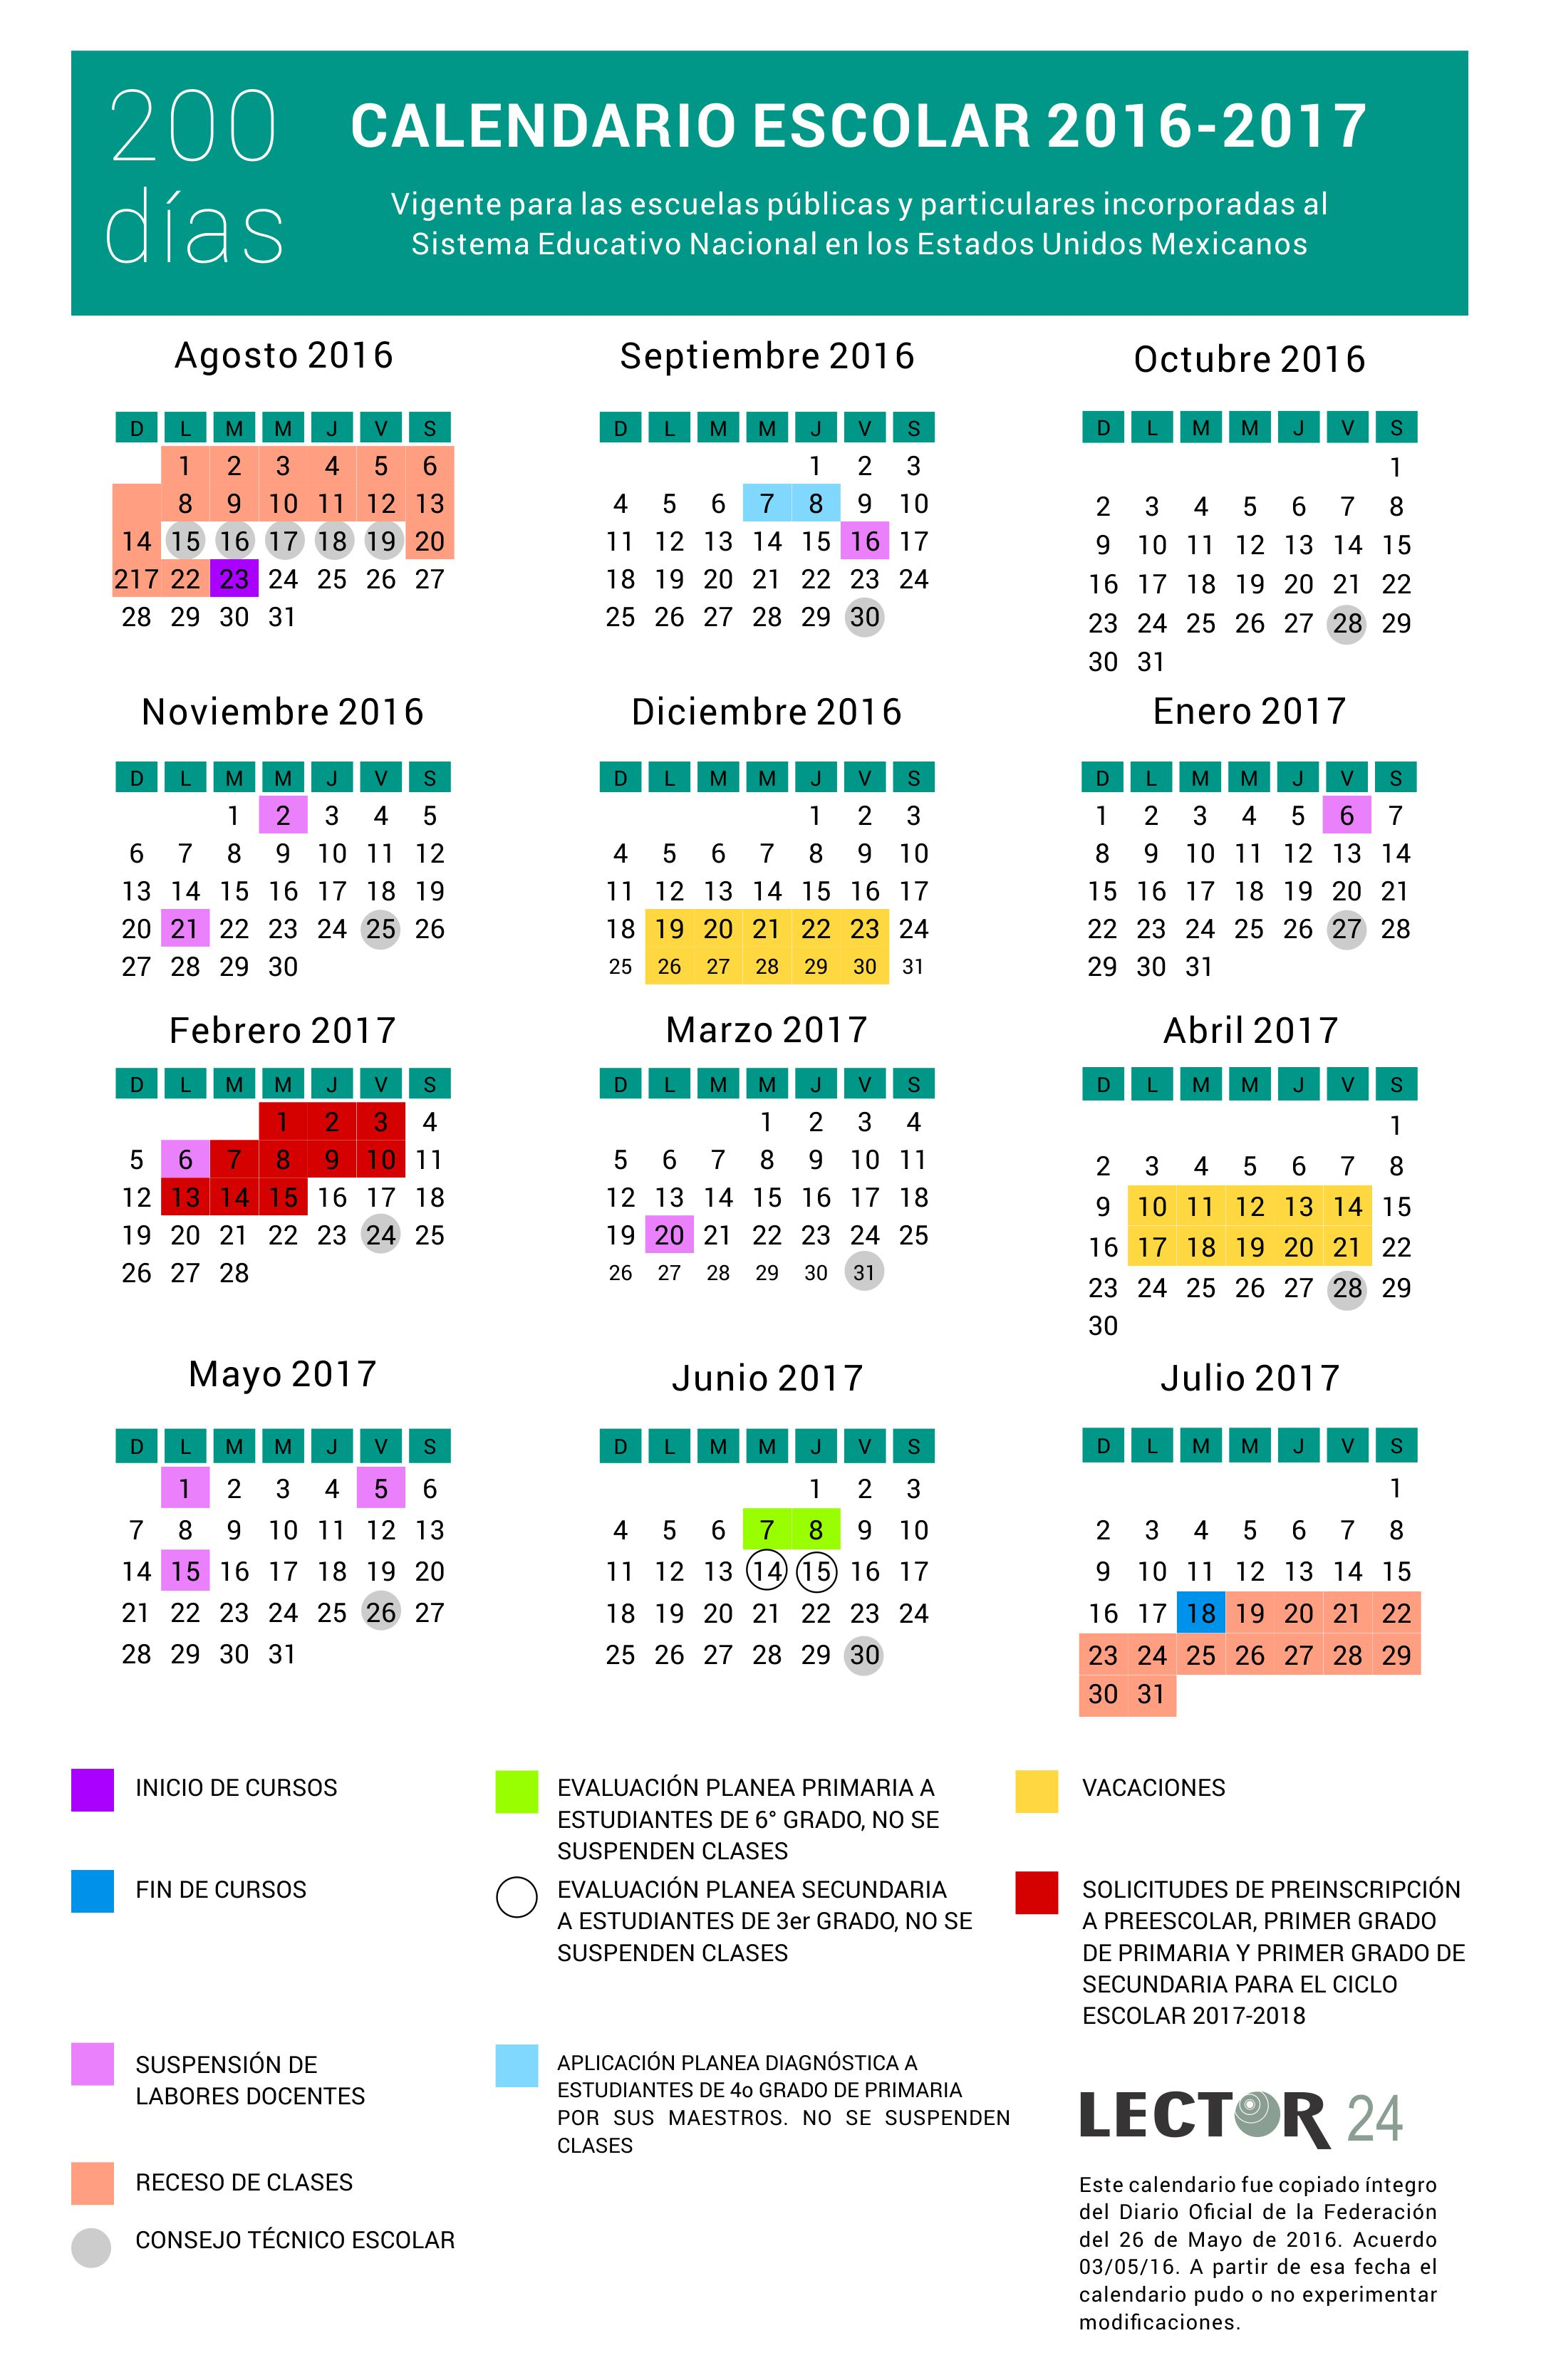 2016 05 26 Calendario escolar 2016-2017 SEP 200 días